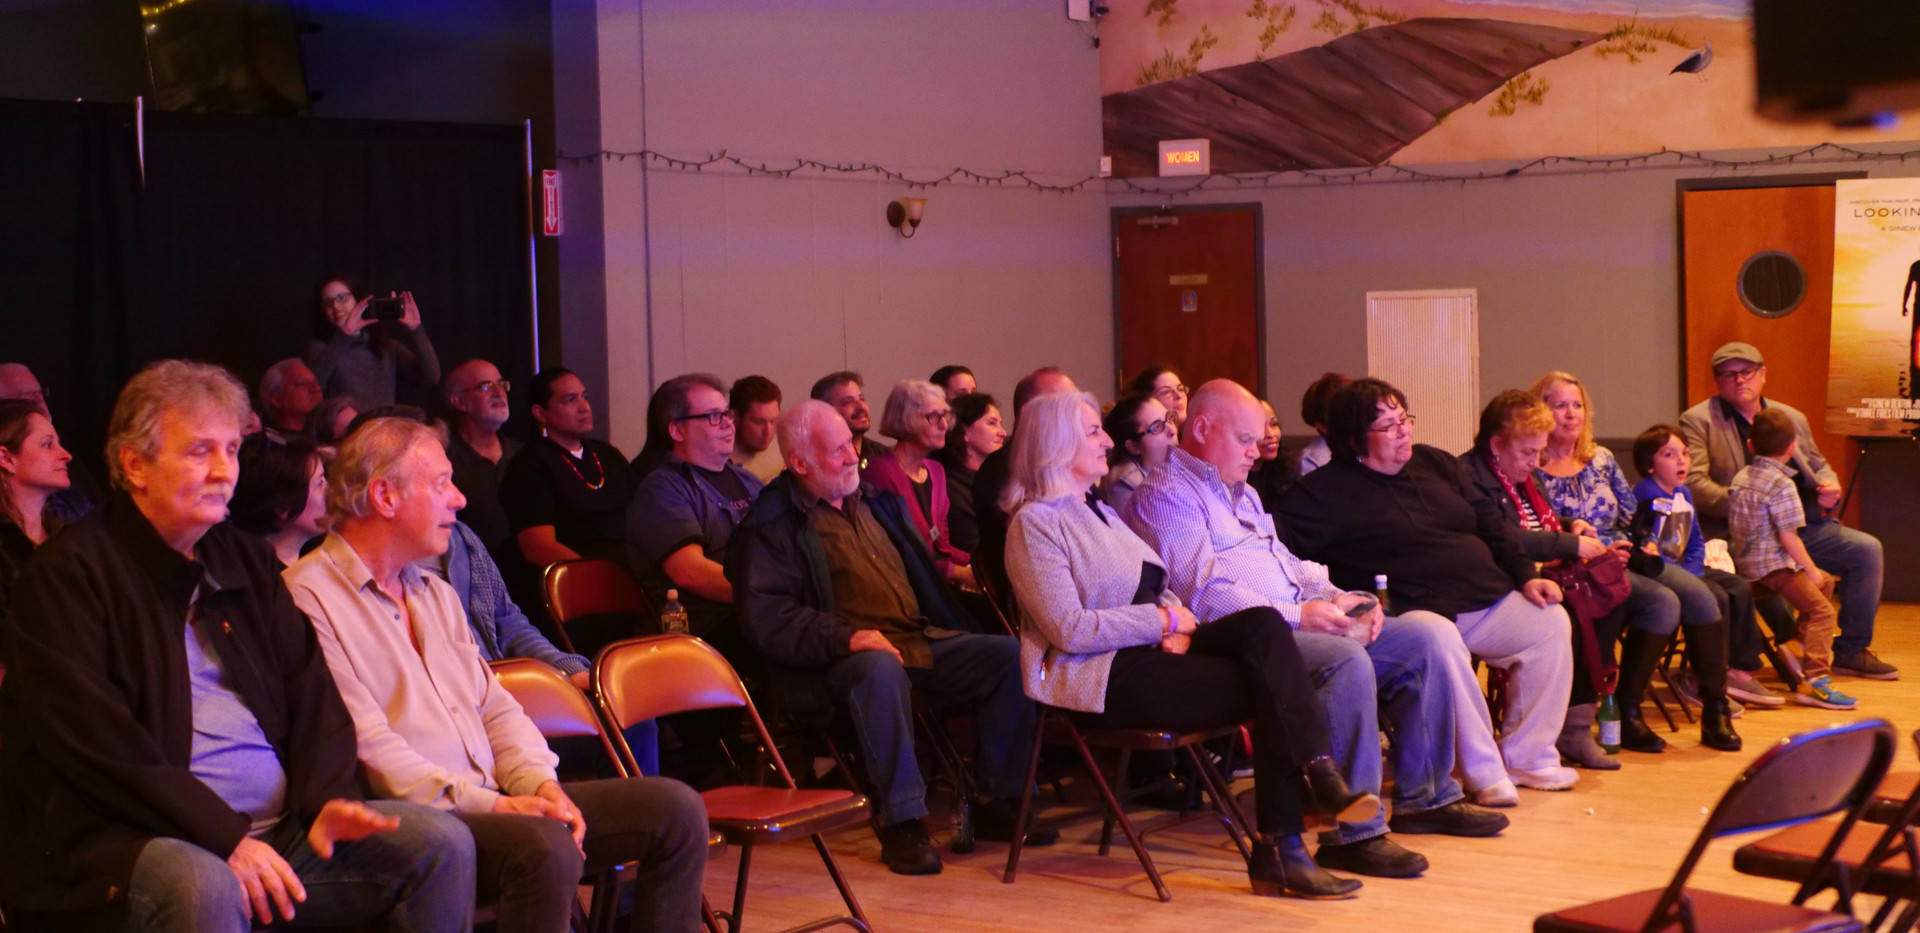 Our loyal audience...